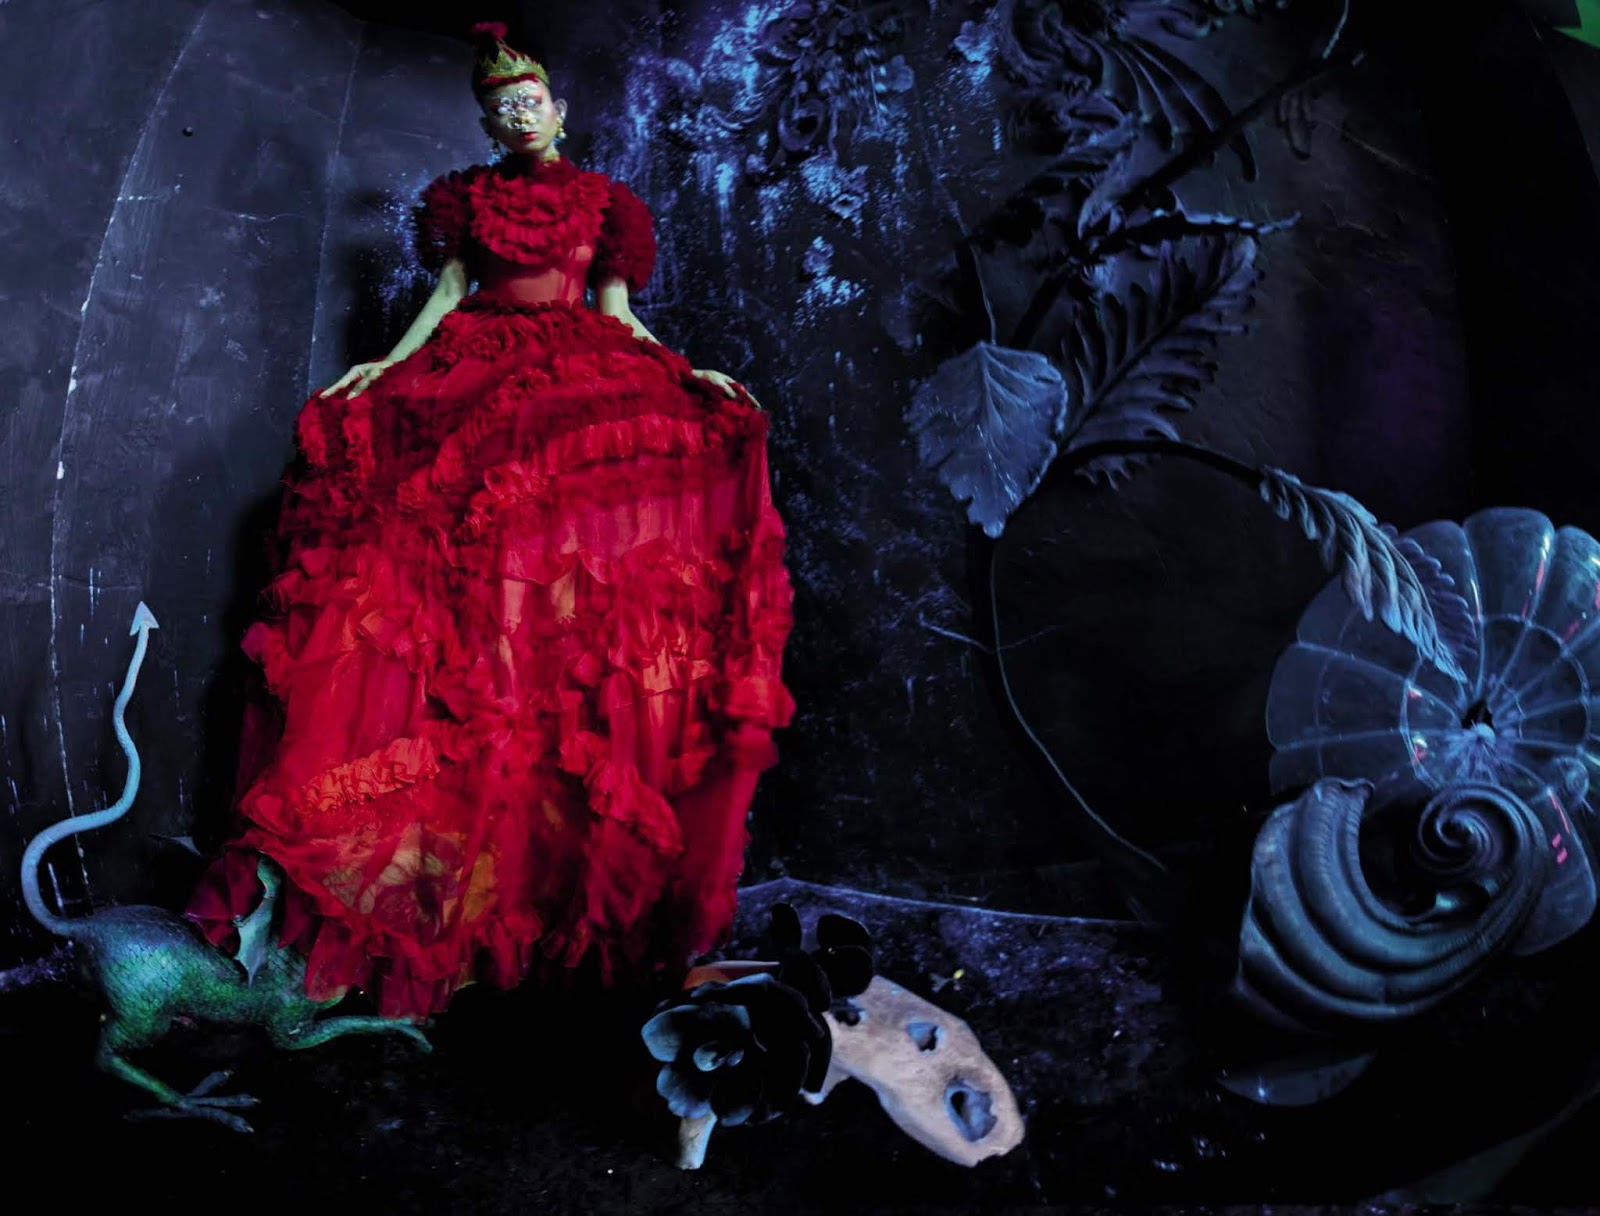 Lil' Dragon by Tim Walker